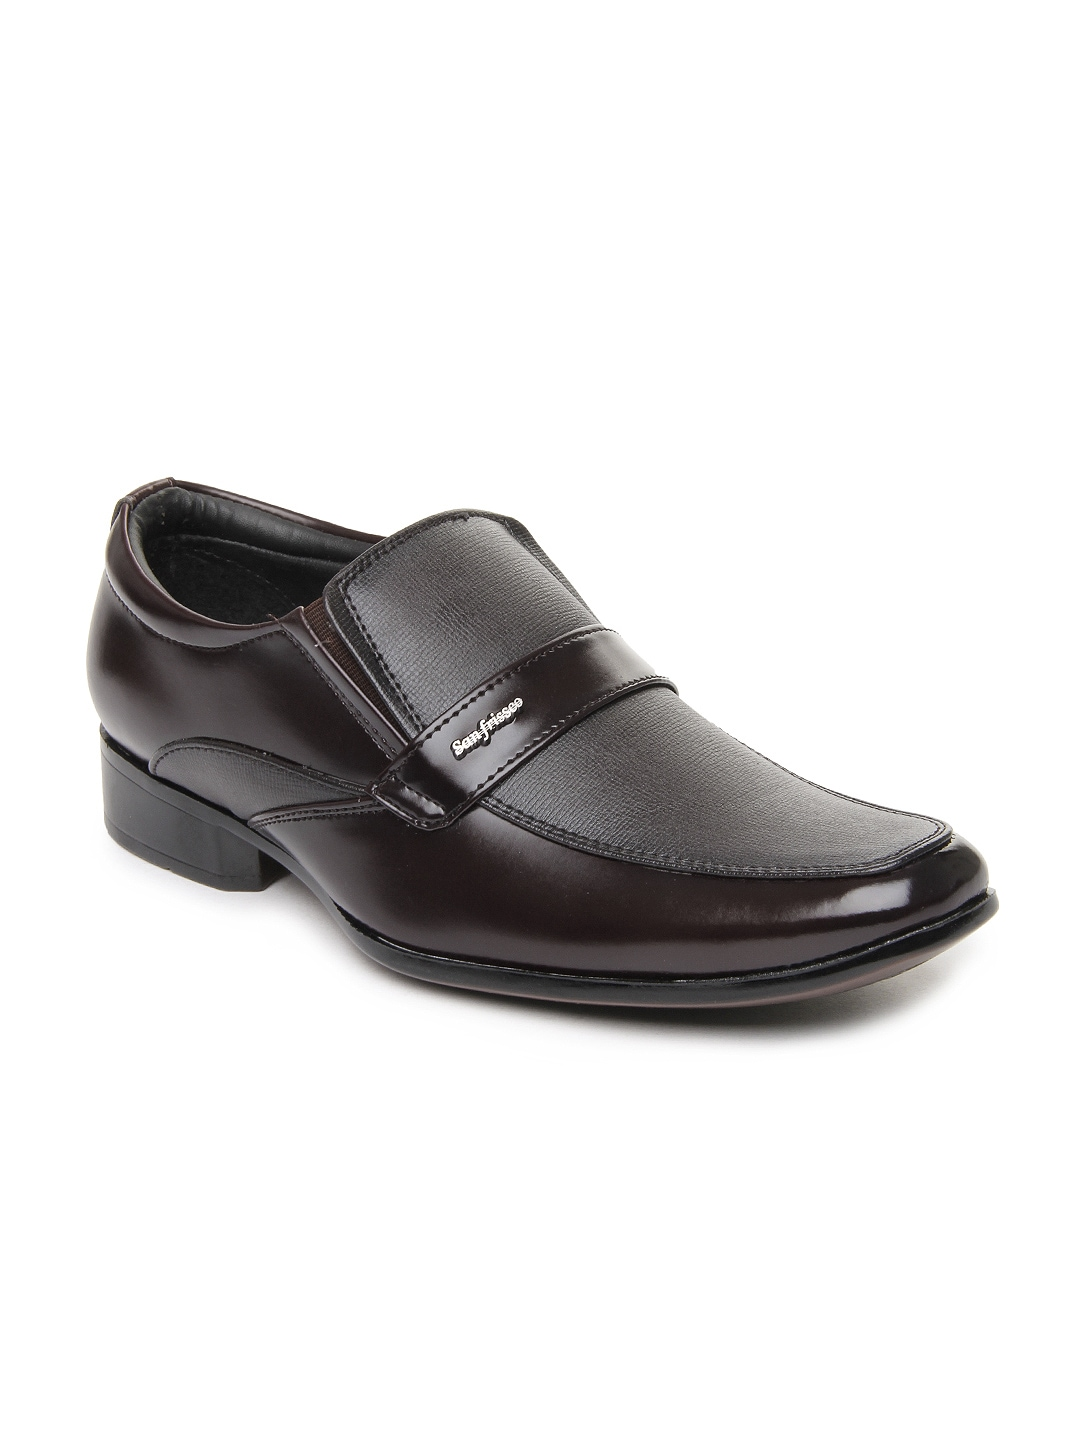 brown formal leather shoes price at flipkart snapdeal